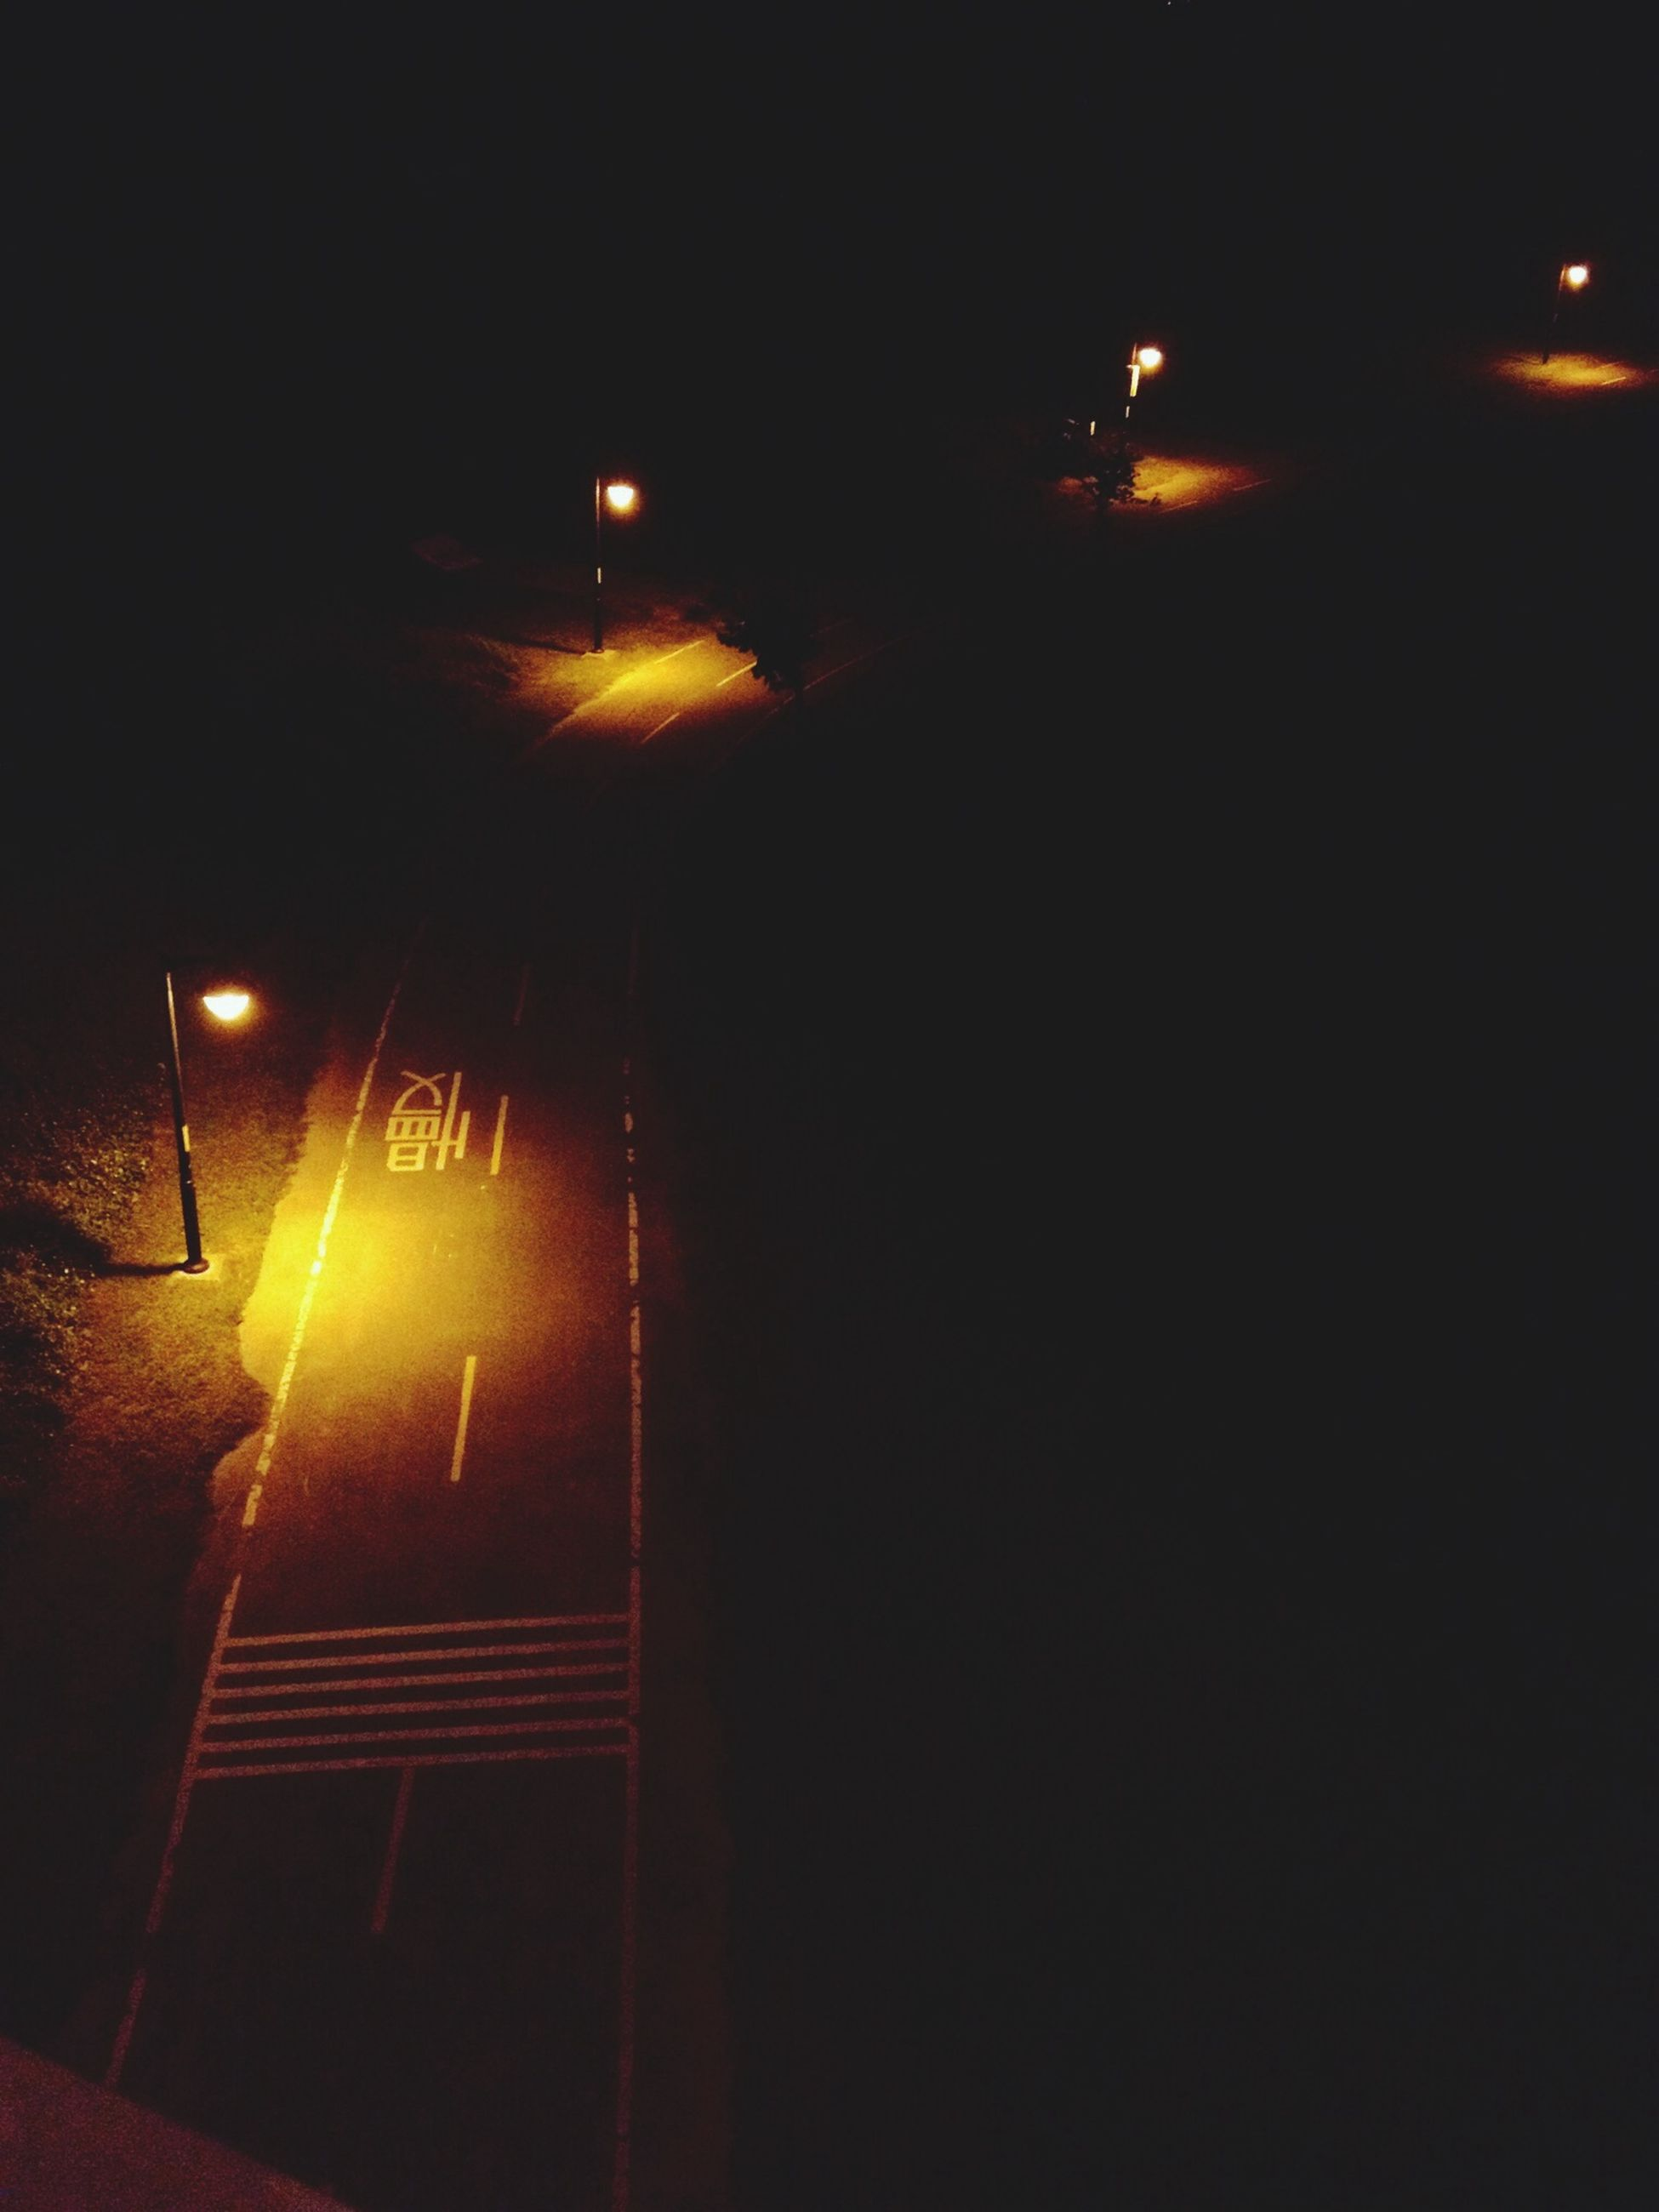 illuminated, night, lighting equipment, street light, dark, light - natural phenomenon, electric light, transportation, glowing, the way forward, lit, indoors, no people, electricity, built structure, street, light beam, road, copy space, low angle view